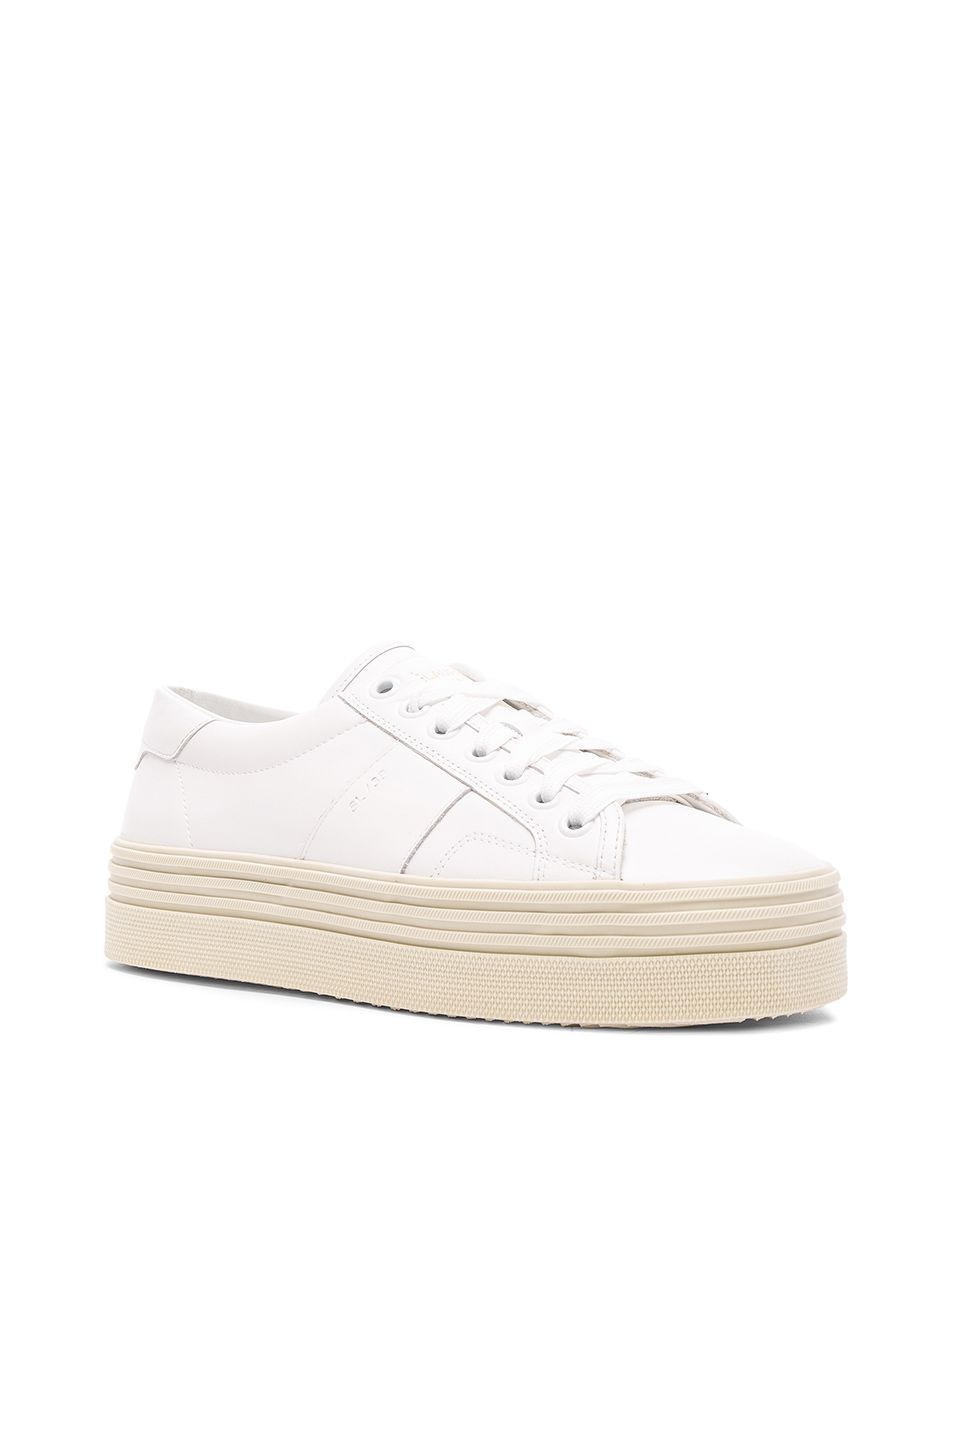 e9c05460981 Saint Laurent Leather Court Classic Platform Sneakers in Off White ...